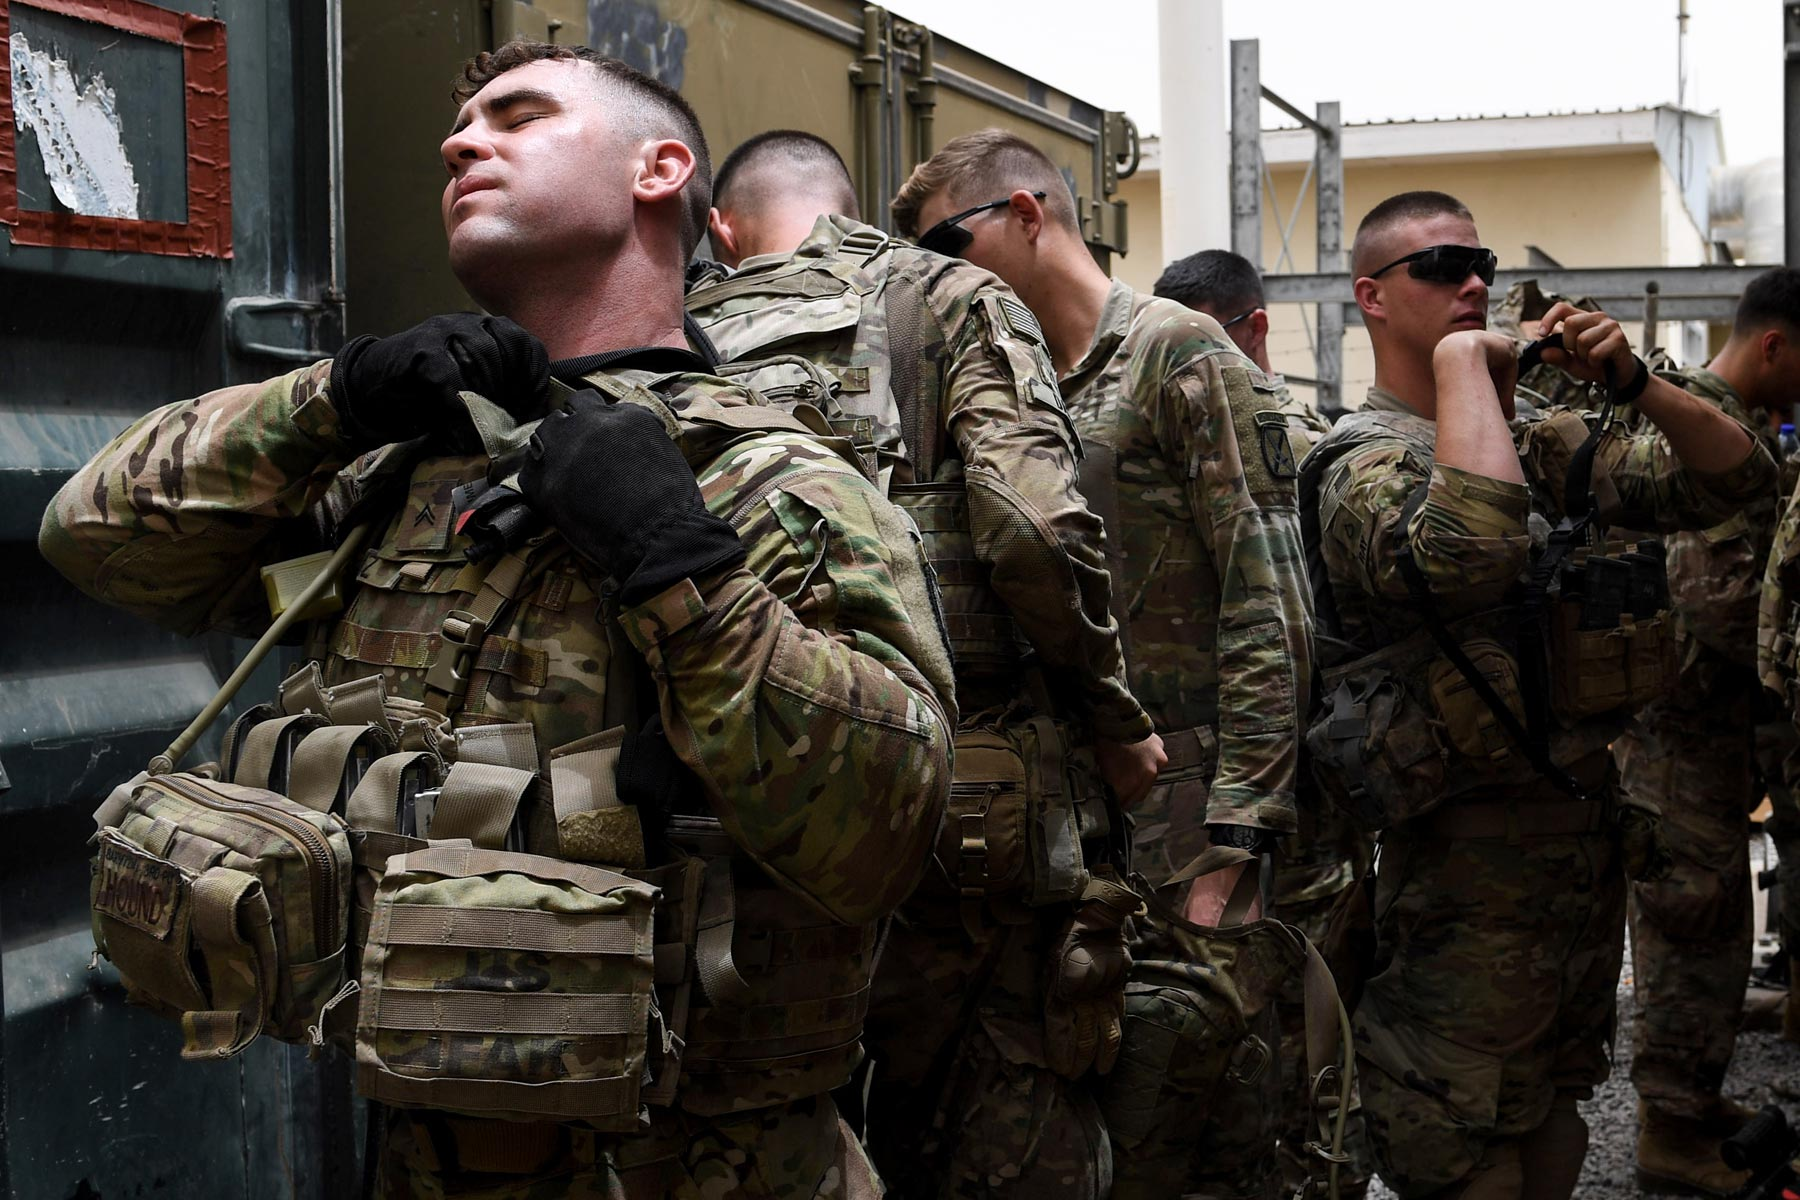 army body armor may be too heavy for combat  report finds